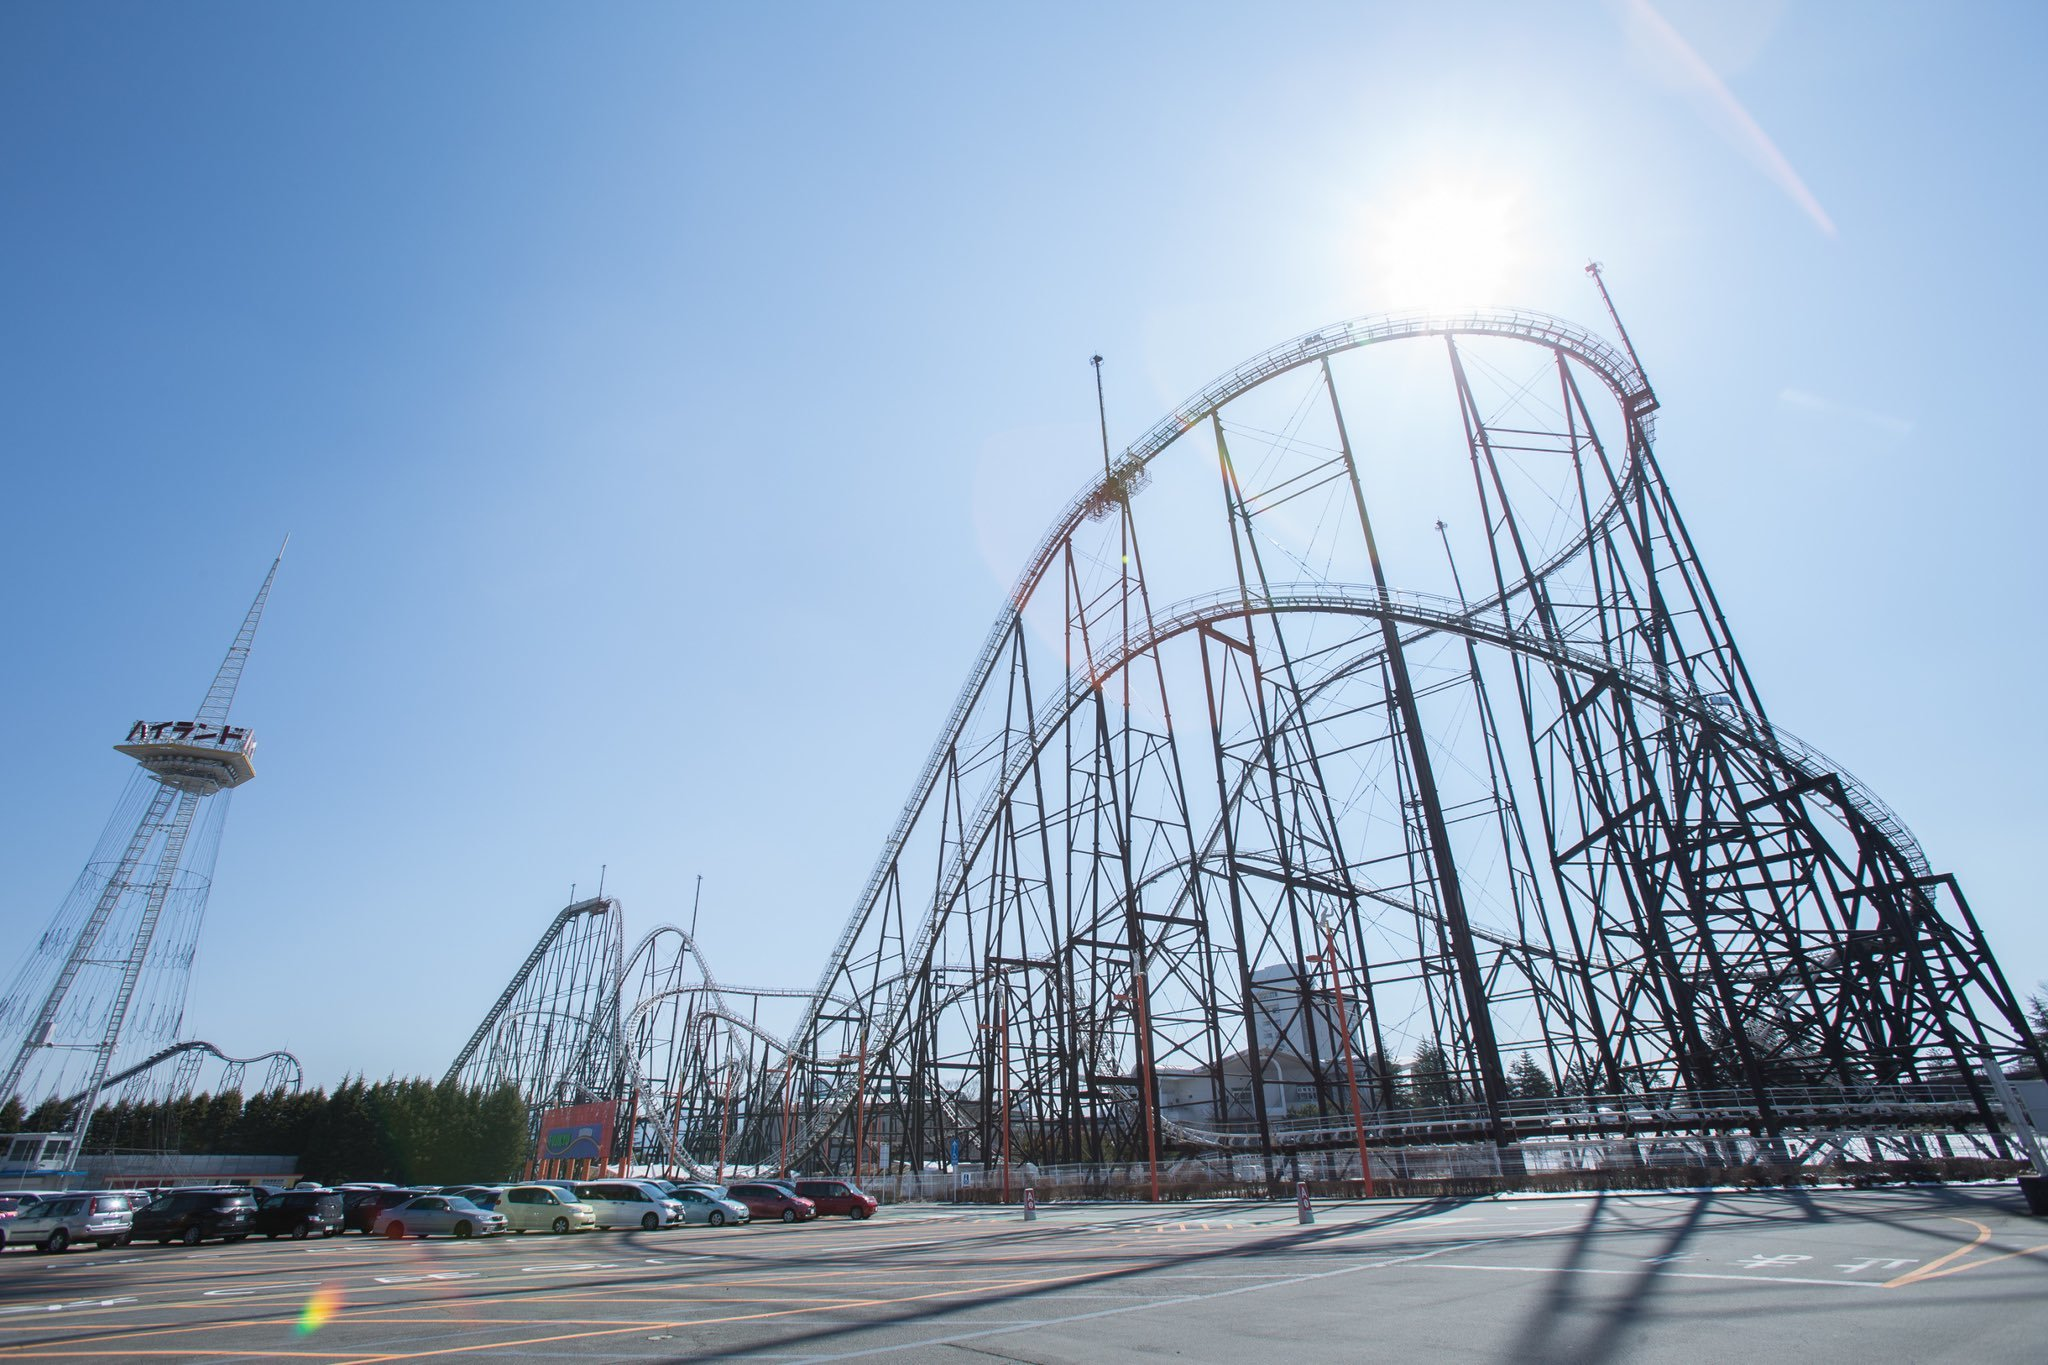 No screaming on roller coasters – Japan shows you how it's done